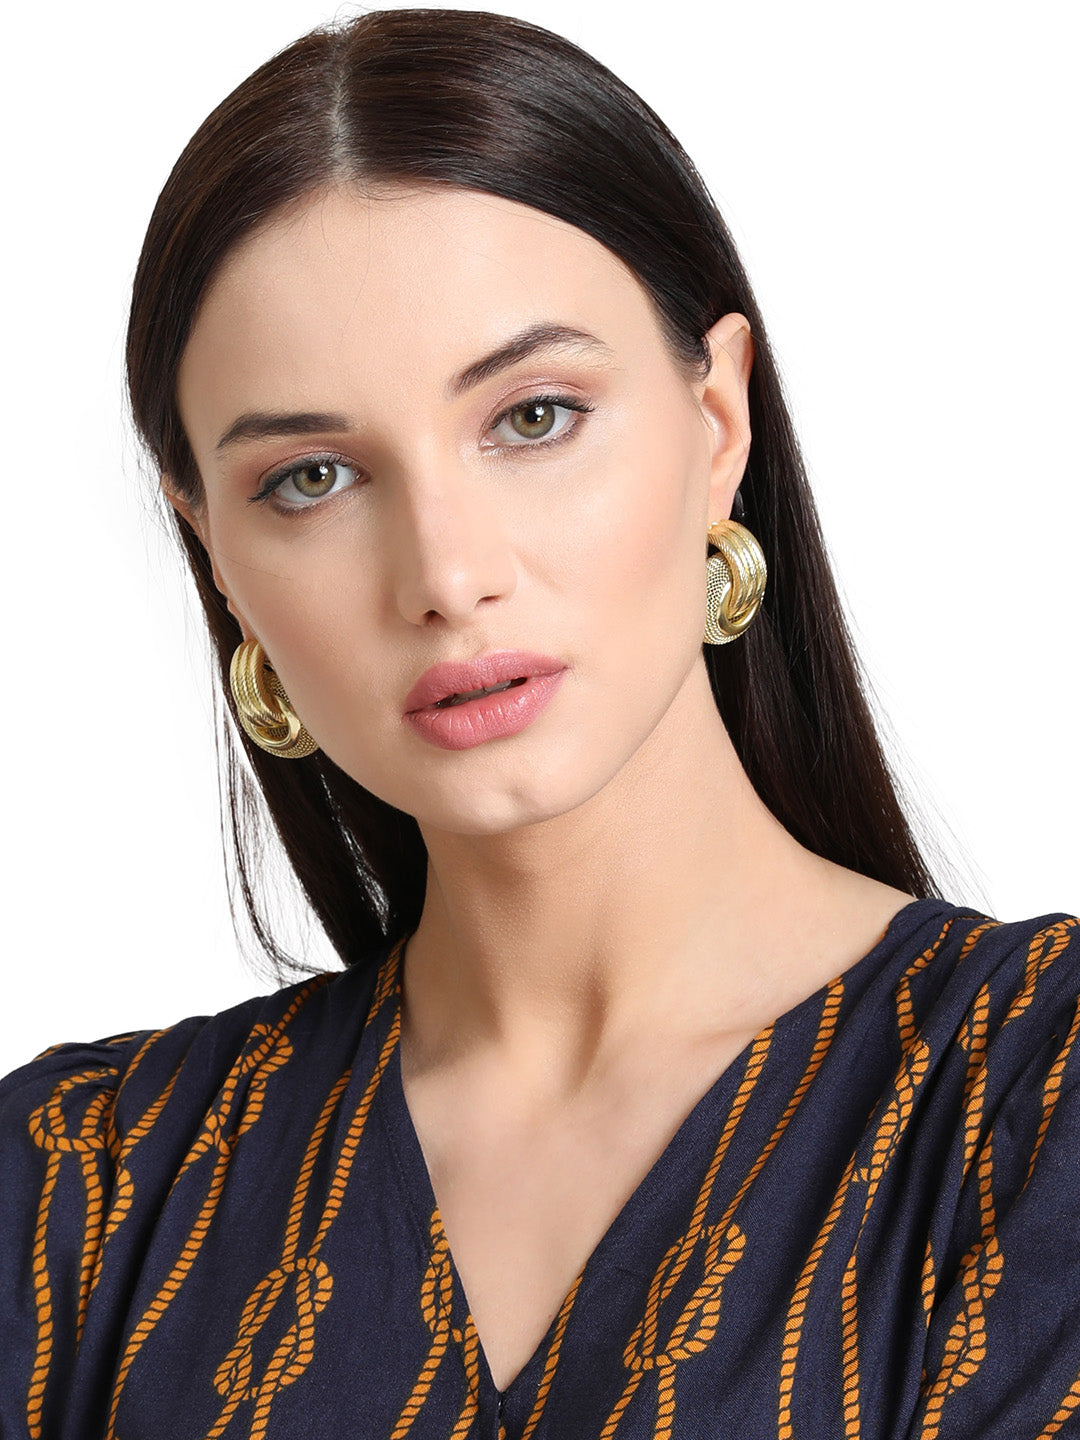 Entangled Design Gold Plated Earring Compliments Any Rich Look